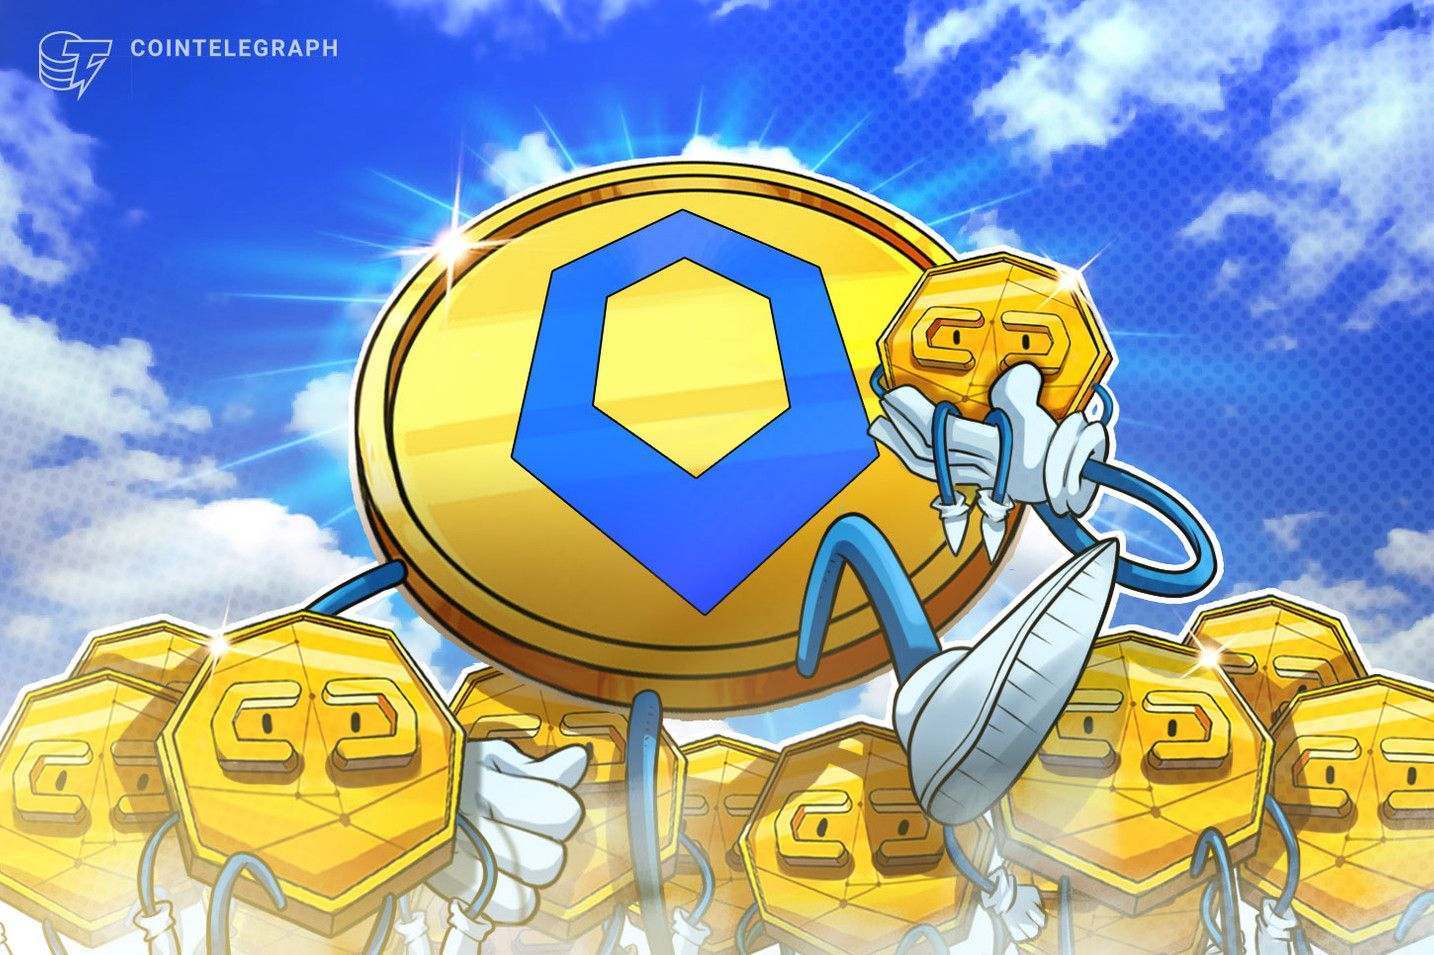 Chainlink Utility Drives LINK Price, but a Correction